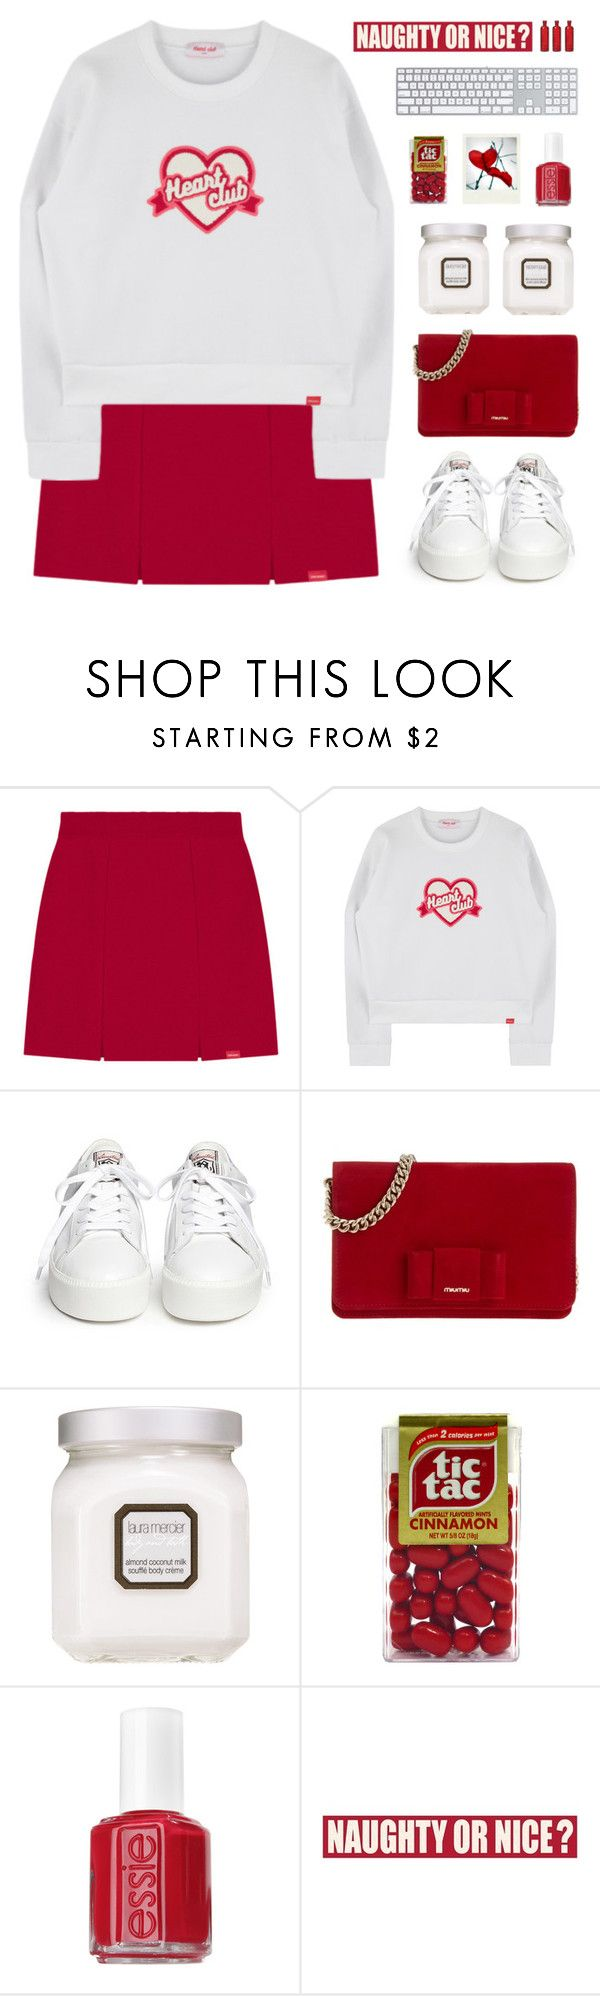 """""""Heart Club"""" by dianakhuzatyan ❤ liked on Polyvore featuring Ash, Miu Miu, Laura Mercier, Polaroid, Essie, Sixtrees, Cultural Intrigue, polyvoreeditorial and organized"""